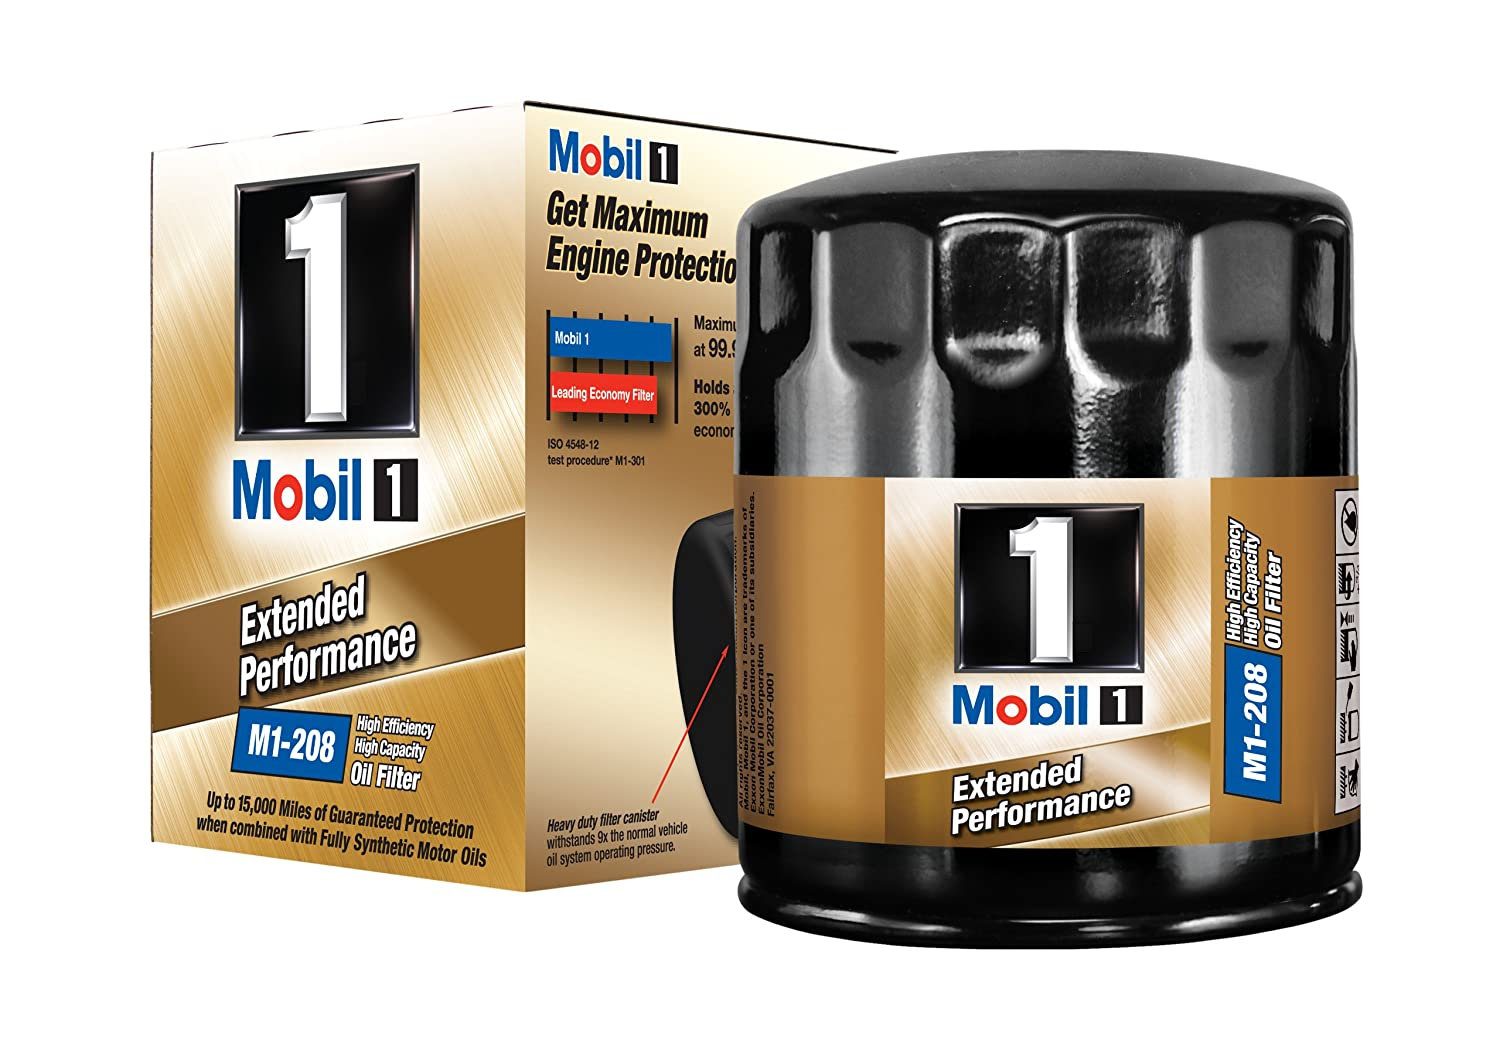 Mobil 1 M1-208 Extended Performance Oil Filter